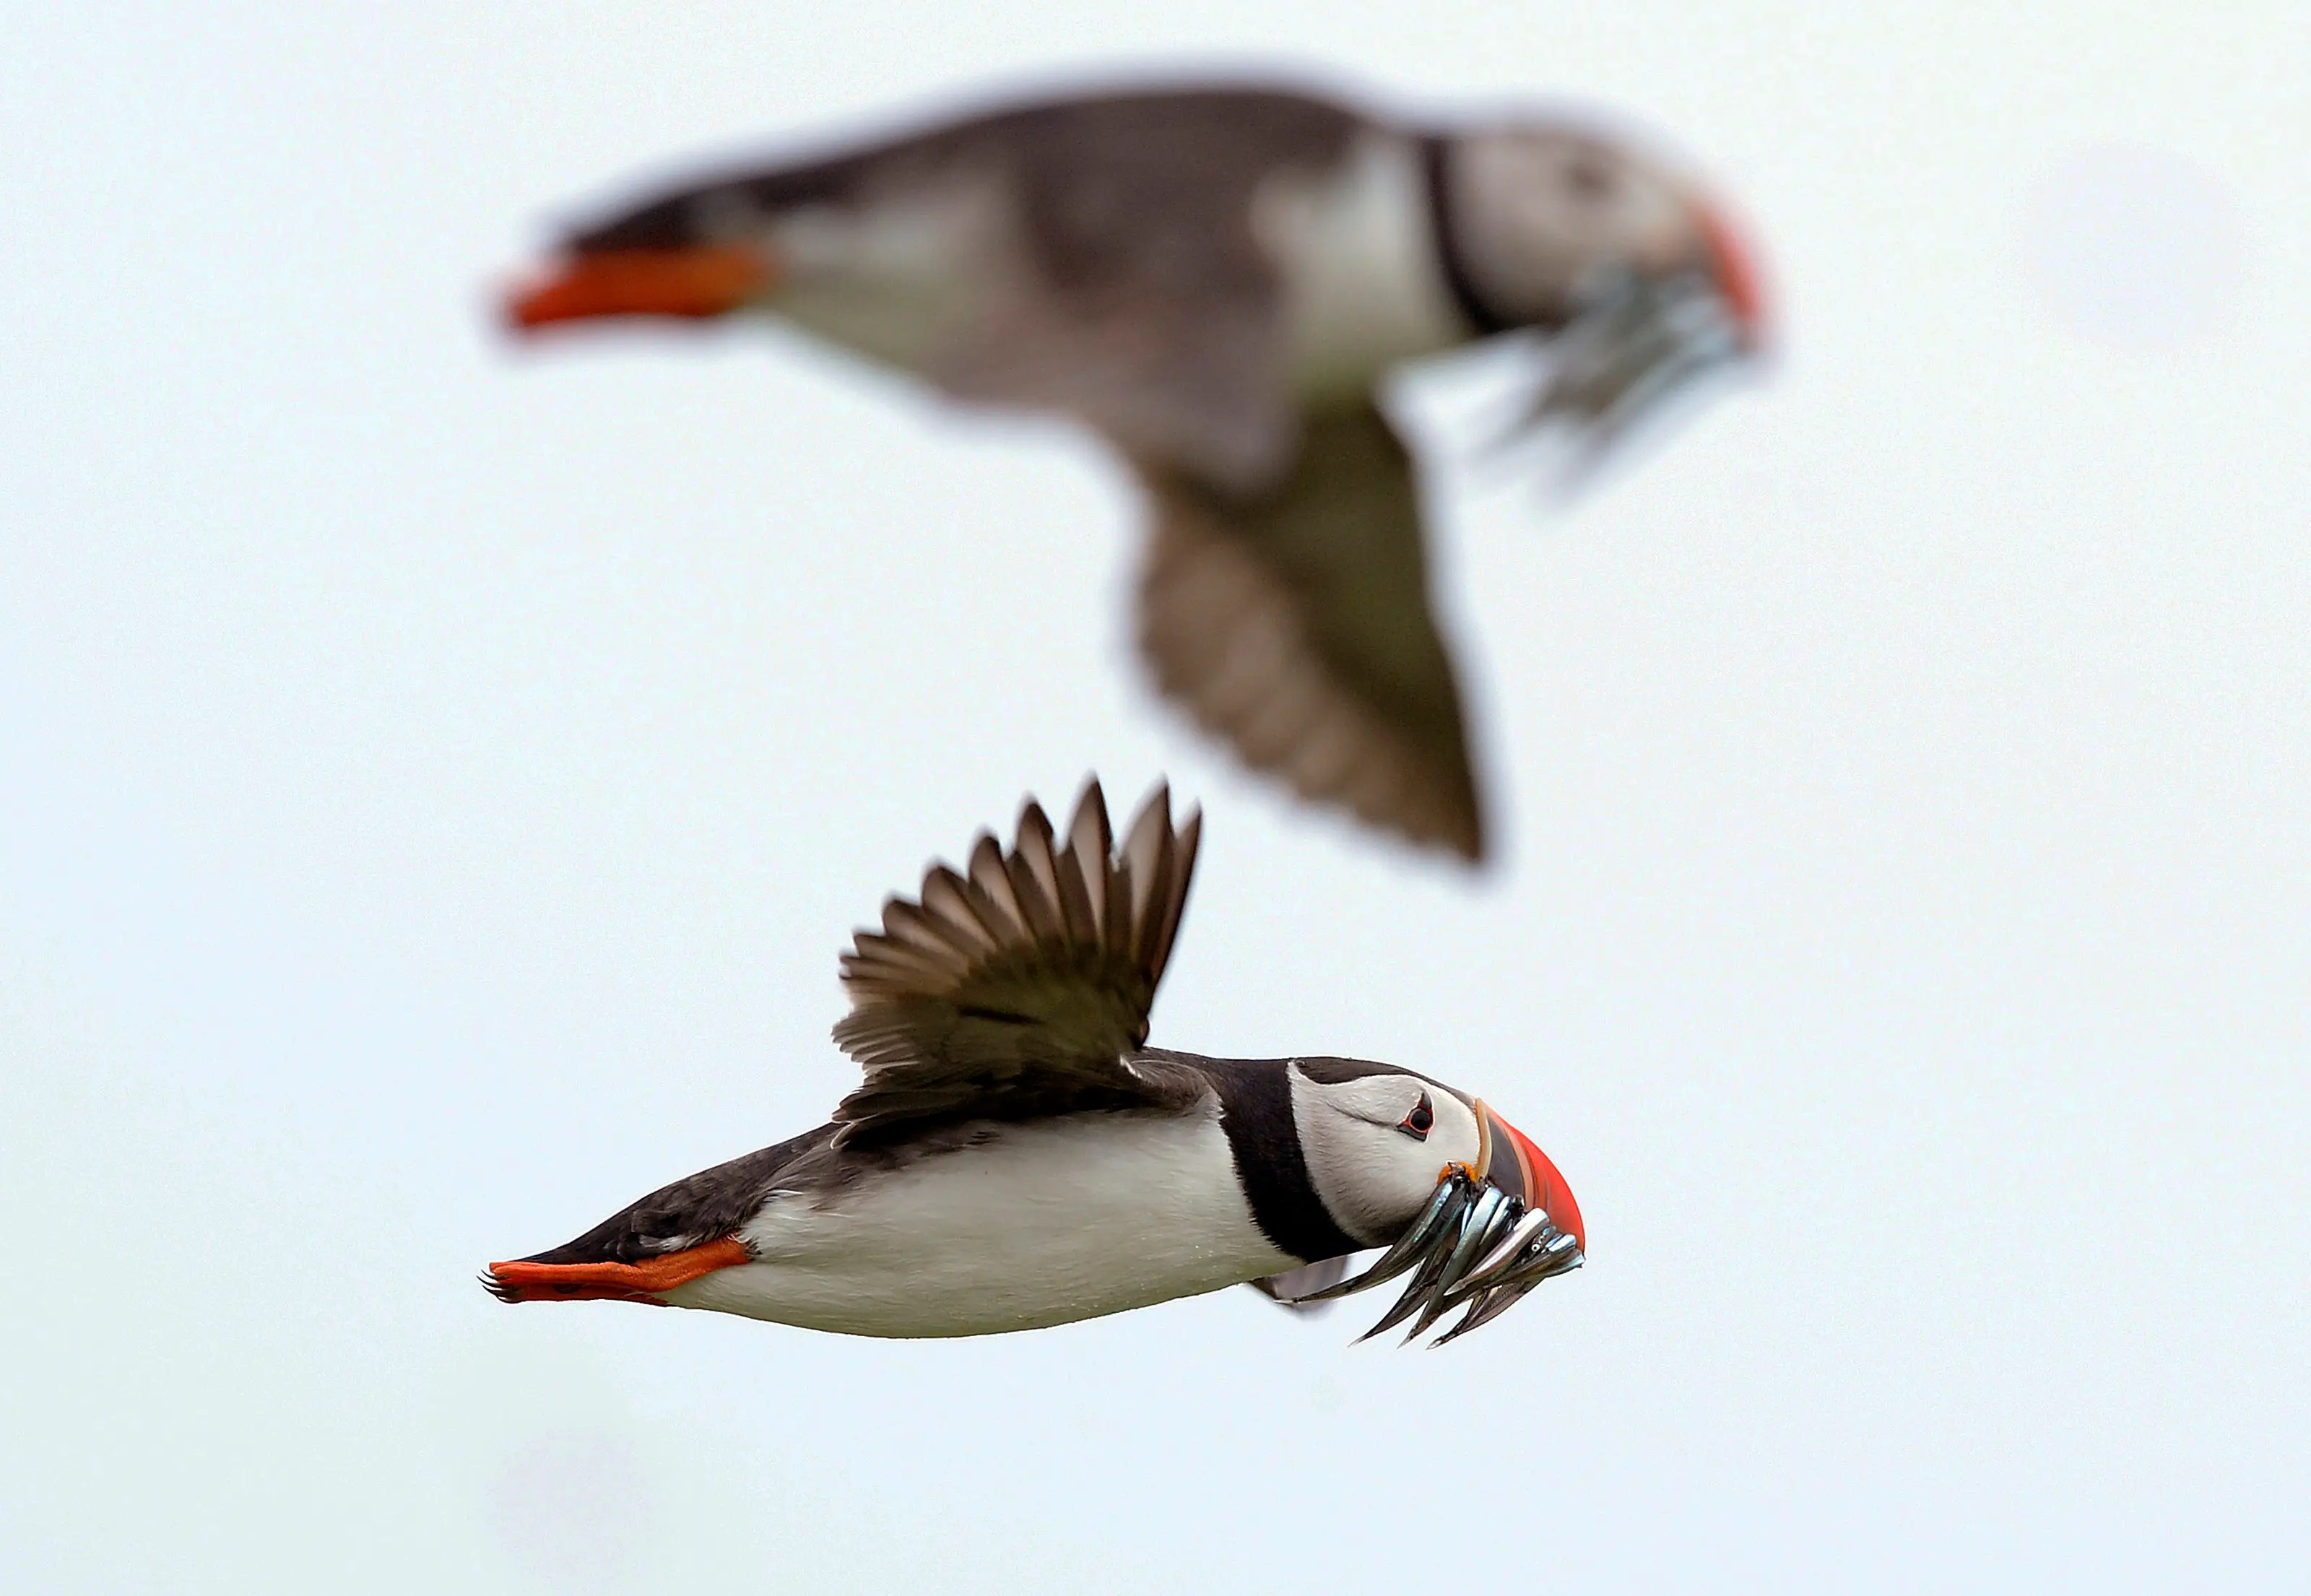 Puffins carry sand eels for their young as they fly above the Farne Islands off northern England.